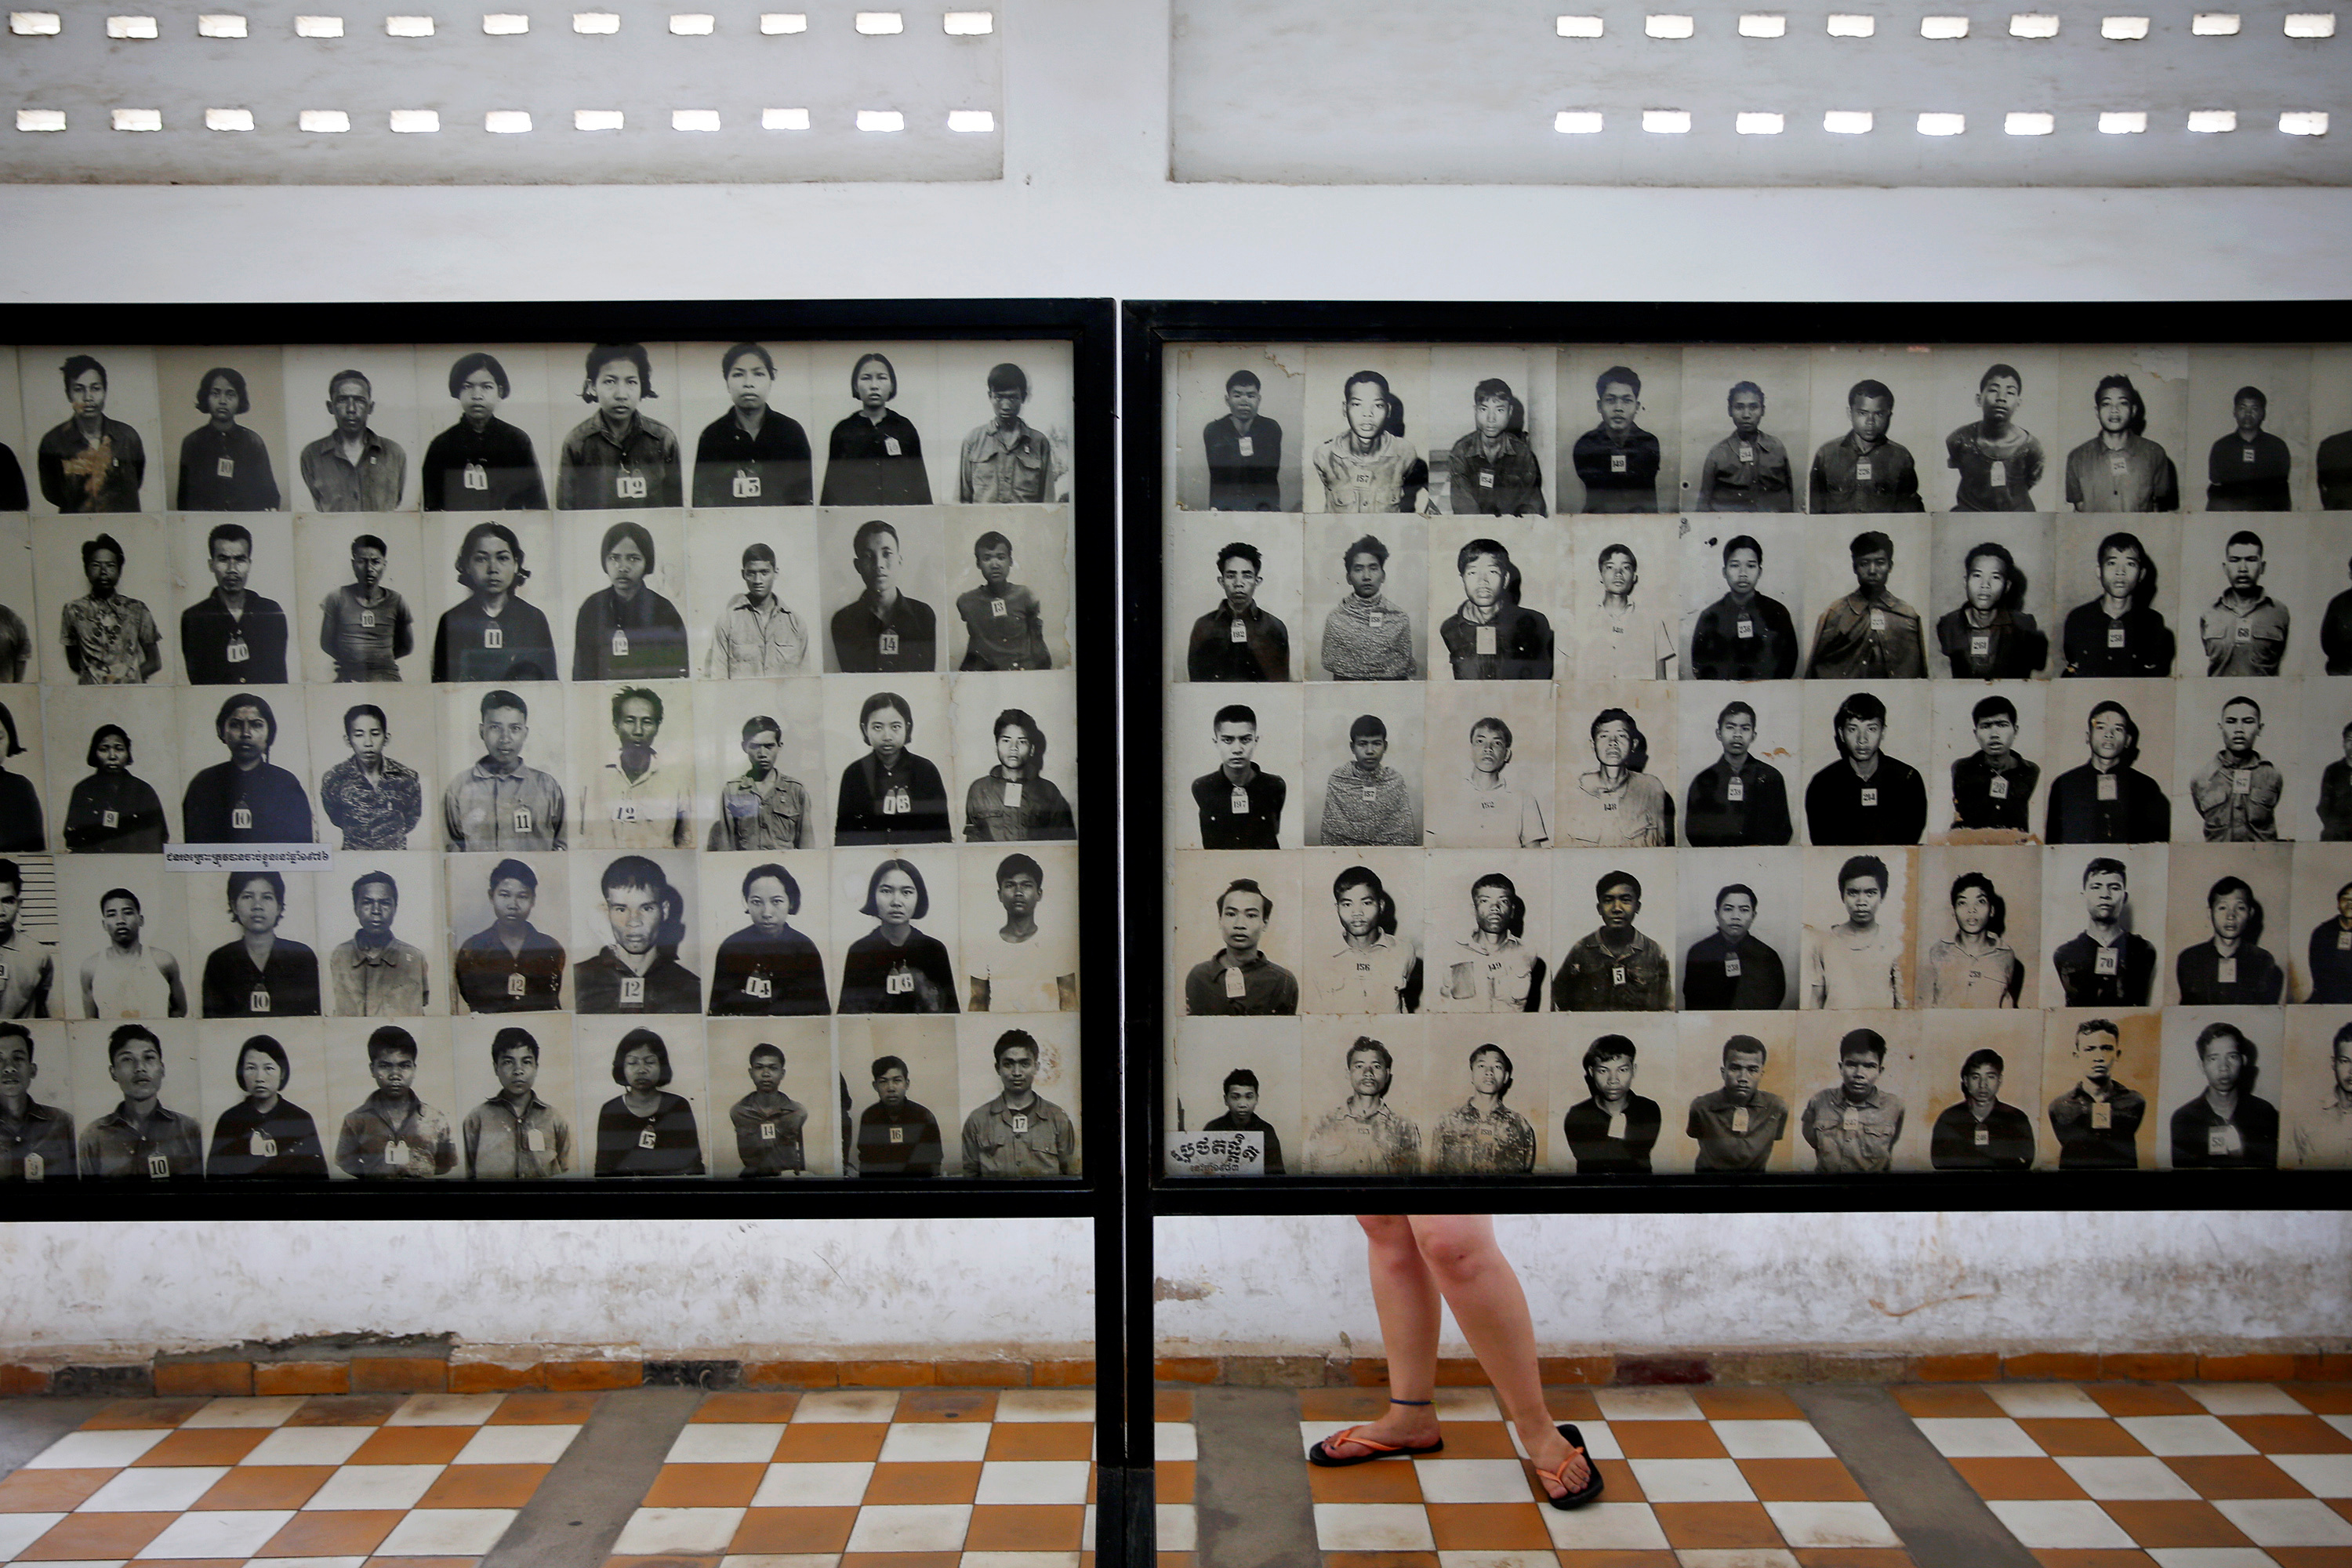 A visitor looks at pictures of victims of Khmer Rouge regime at the former notorious Tuol Sleng prison that is now the Genocide Museum, in Phnom Penh August 5, 2014. REUTERS/Damir Sagol